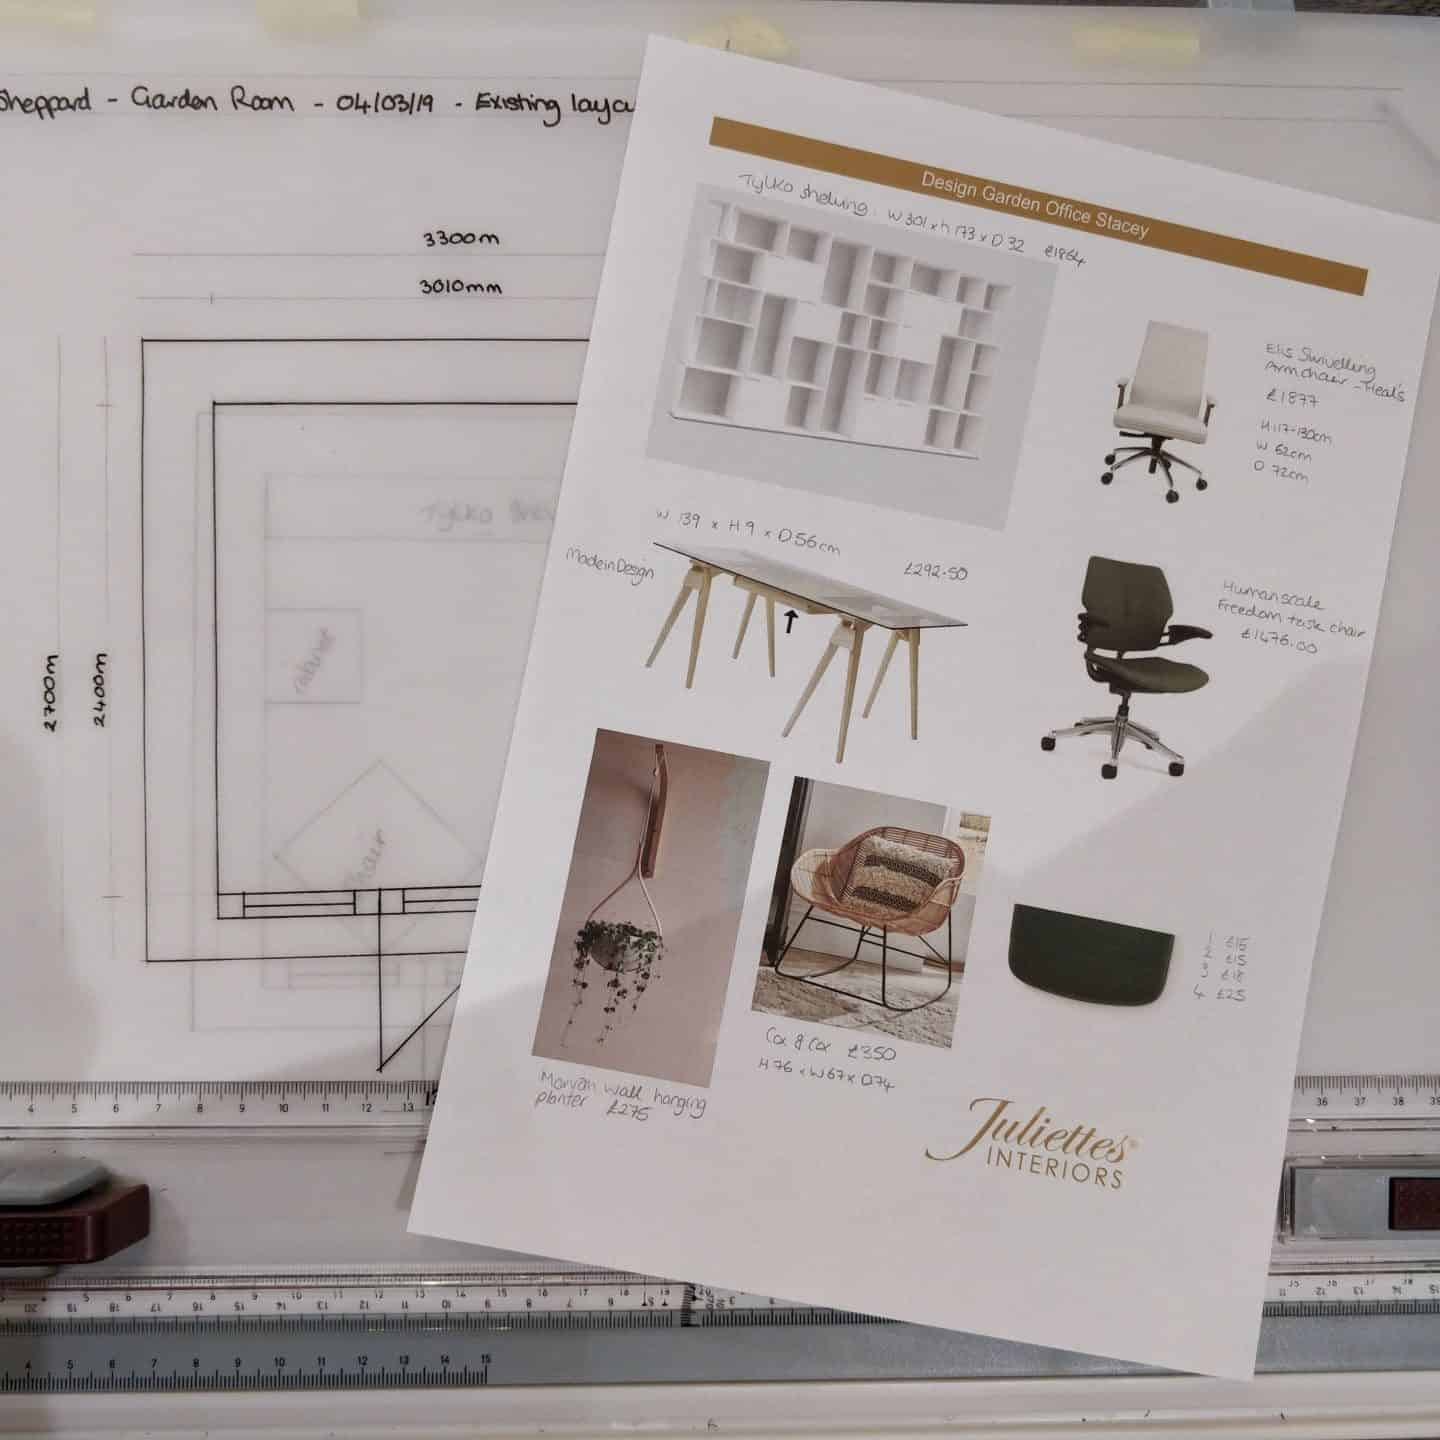 Selecting furniture for an interior design moodboard at Juliette's Interior Design School in London